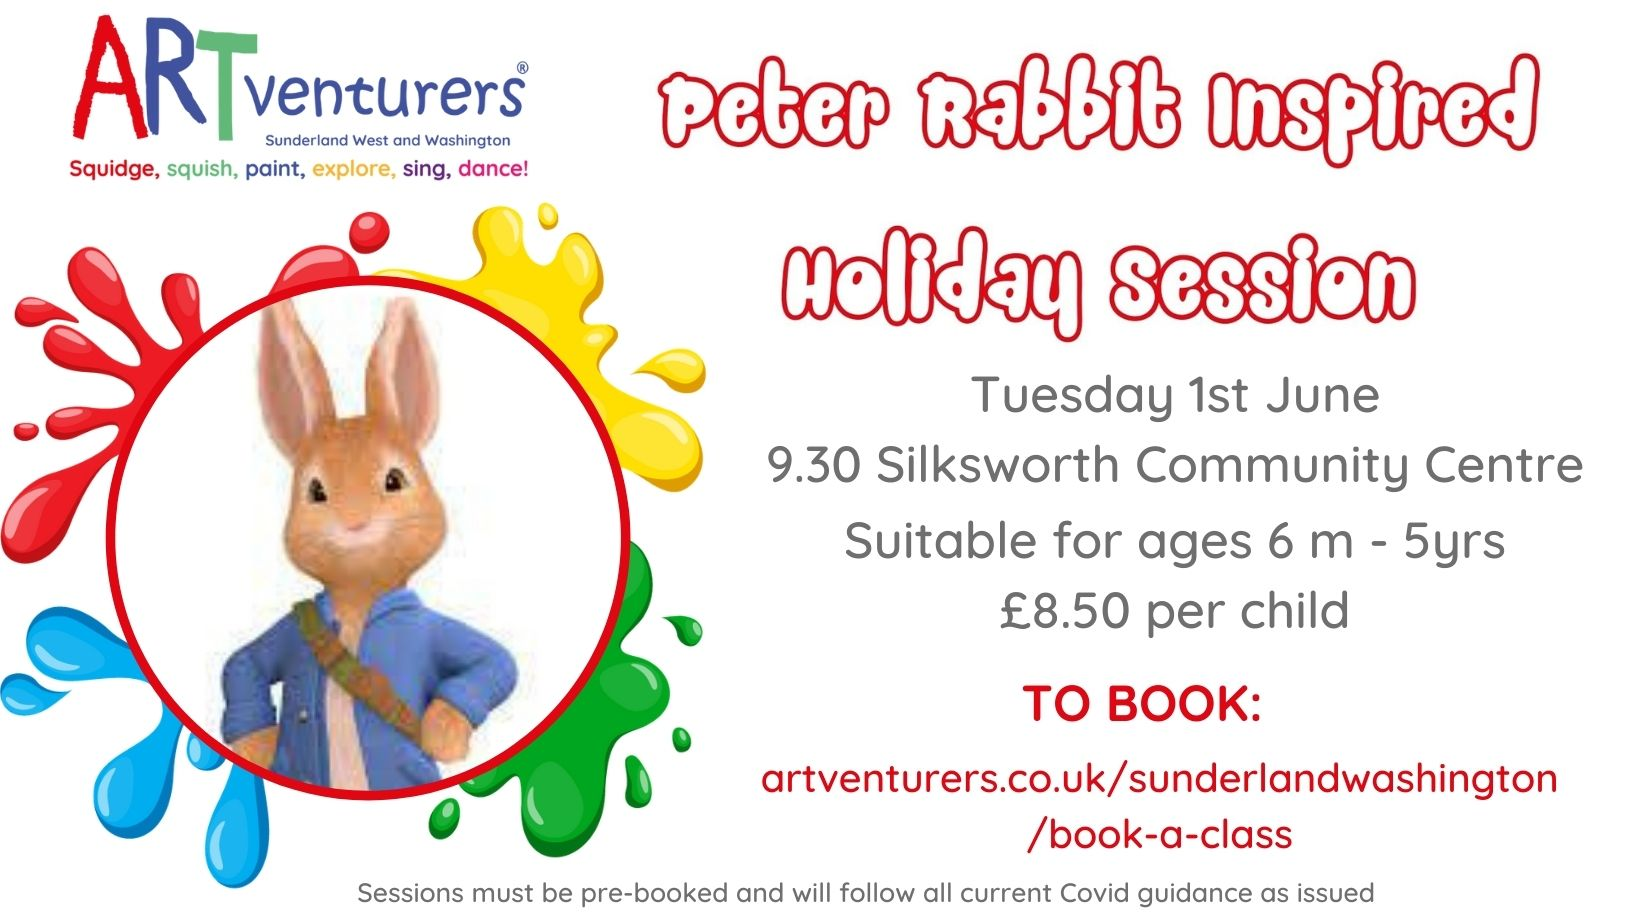 Peter Rabbit Inspired Holiday Session Silksworth